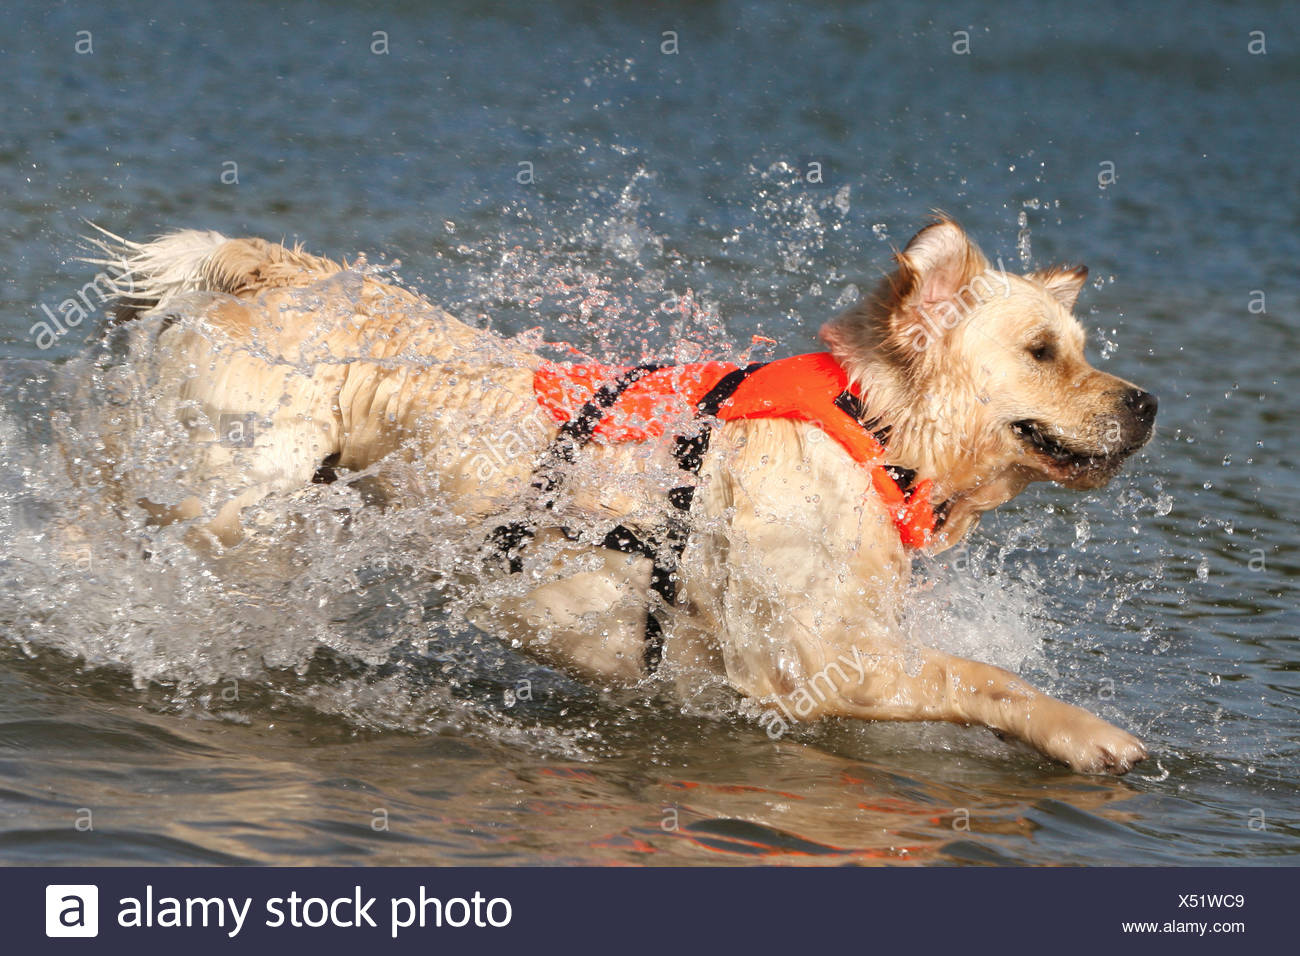 Golden Retriever With Life Jacket Running In Water Stock Photo